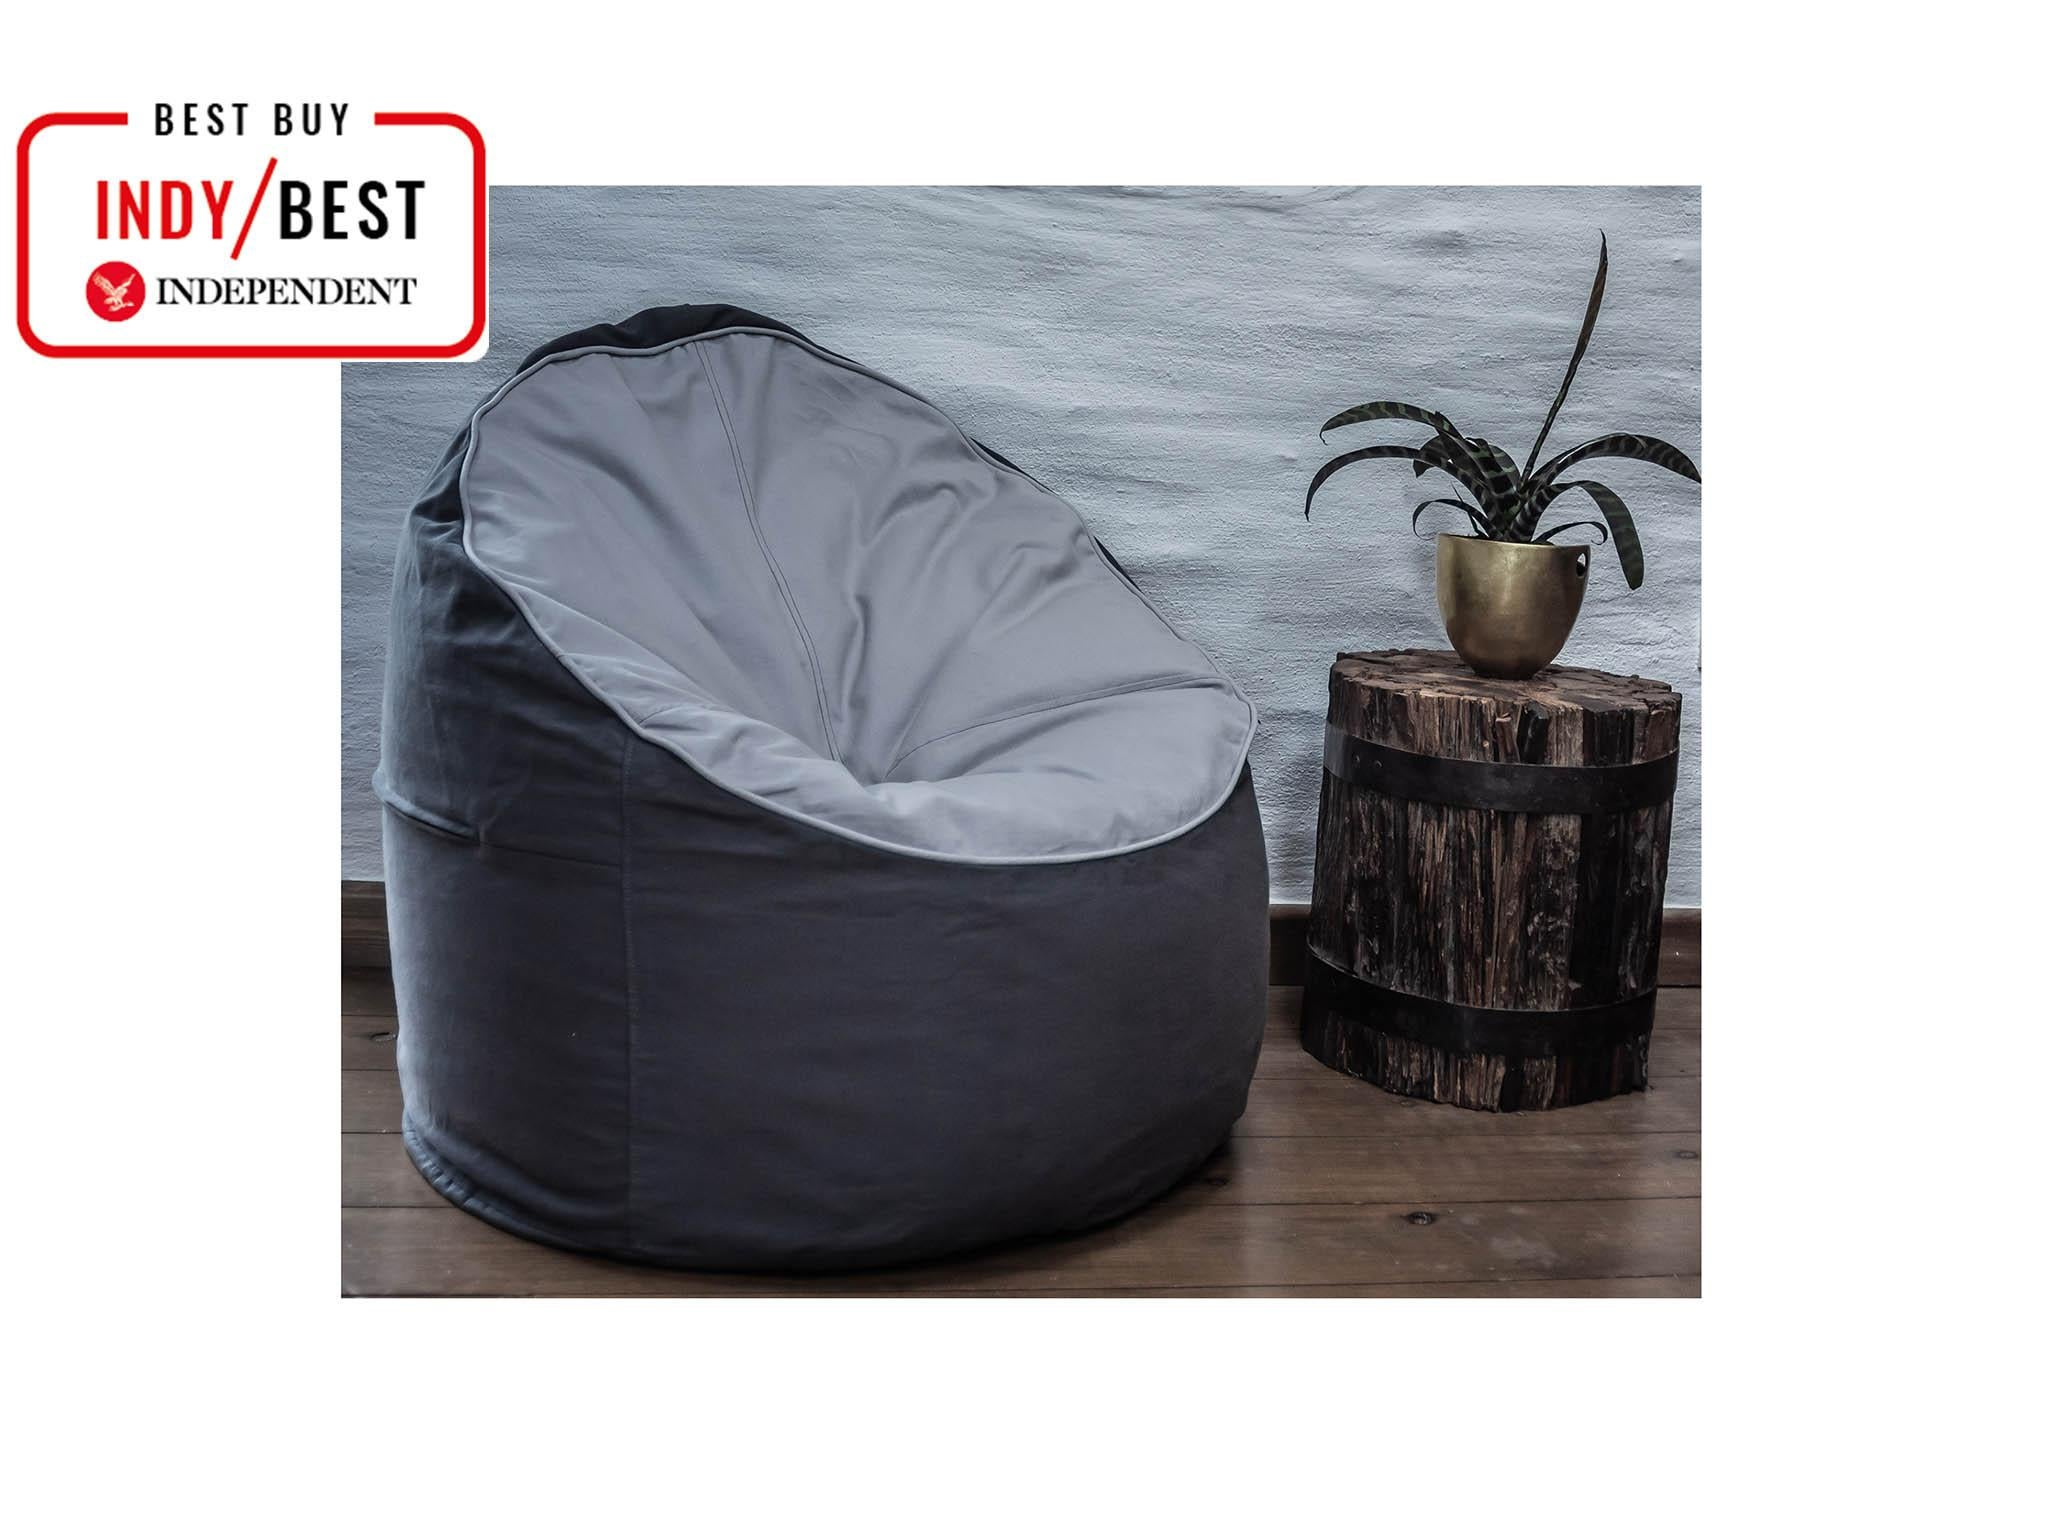 The bean bag dove and oyster  £199.95 c660b5d7f287a